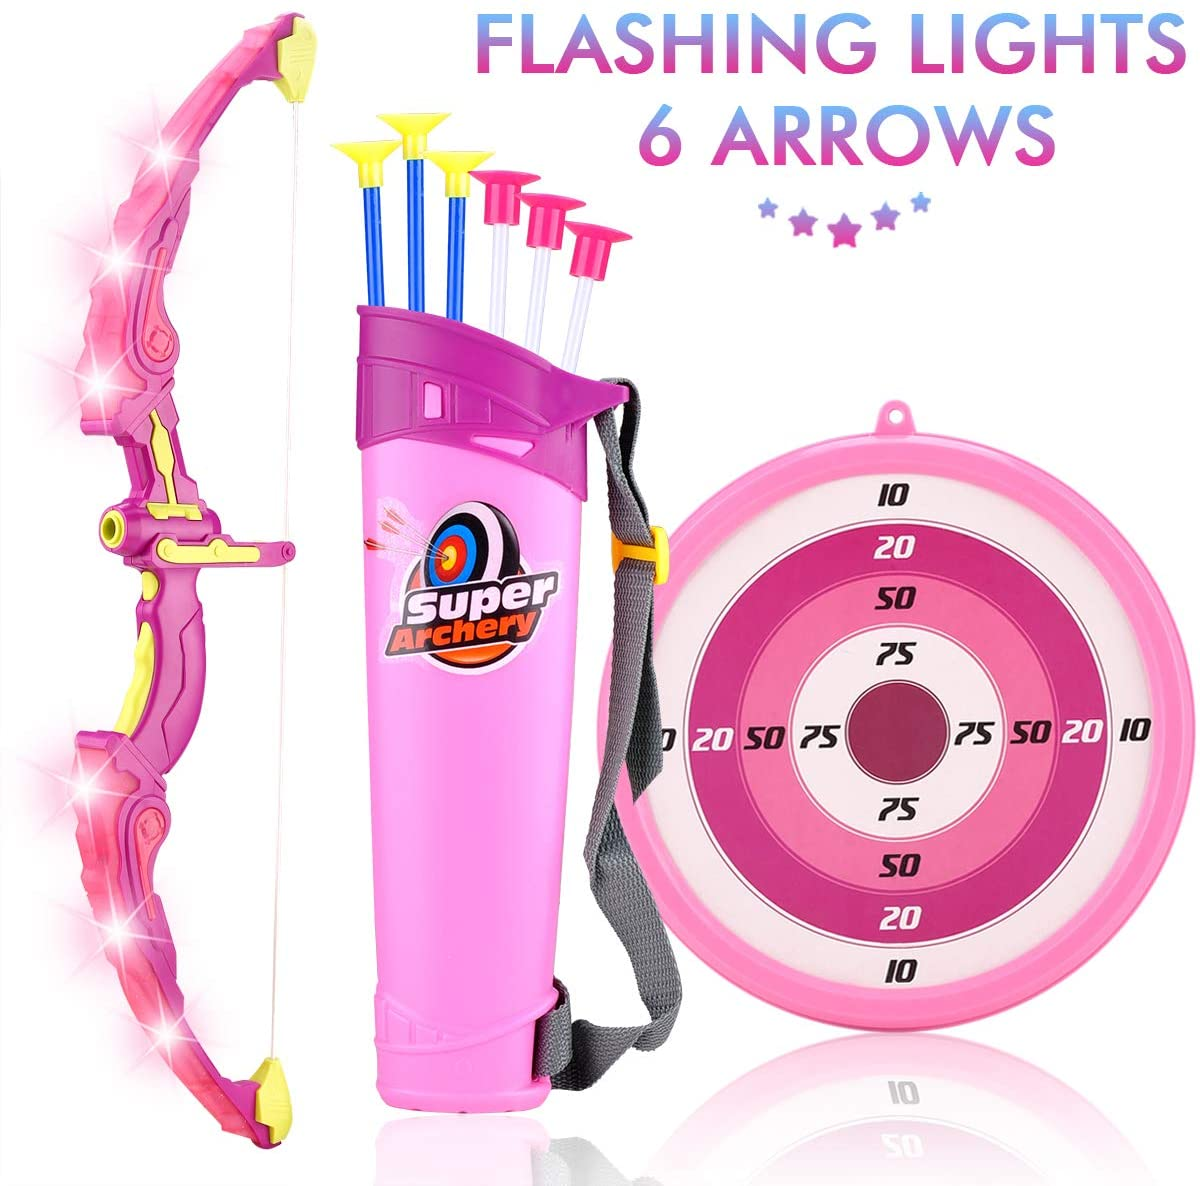 MagicWe Bow and Arrow Toy Set for Kids Archery Bow Comes with 6 Suction Cups Arrows Target with LED Flash Lights Indoor Outdoor Toys Garden Practice Hunting Series Boys Girls Age 3 Years and Up